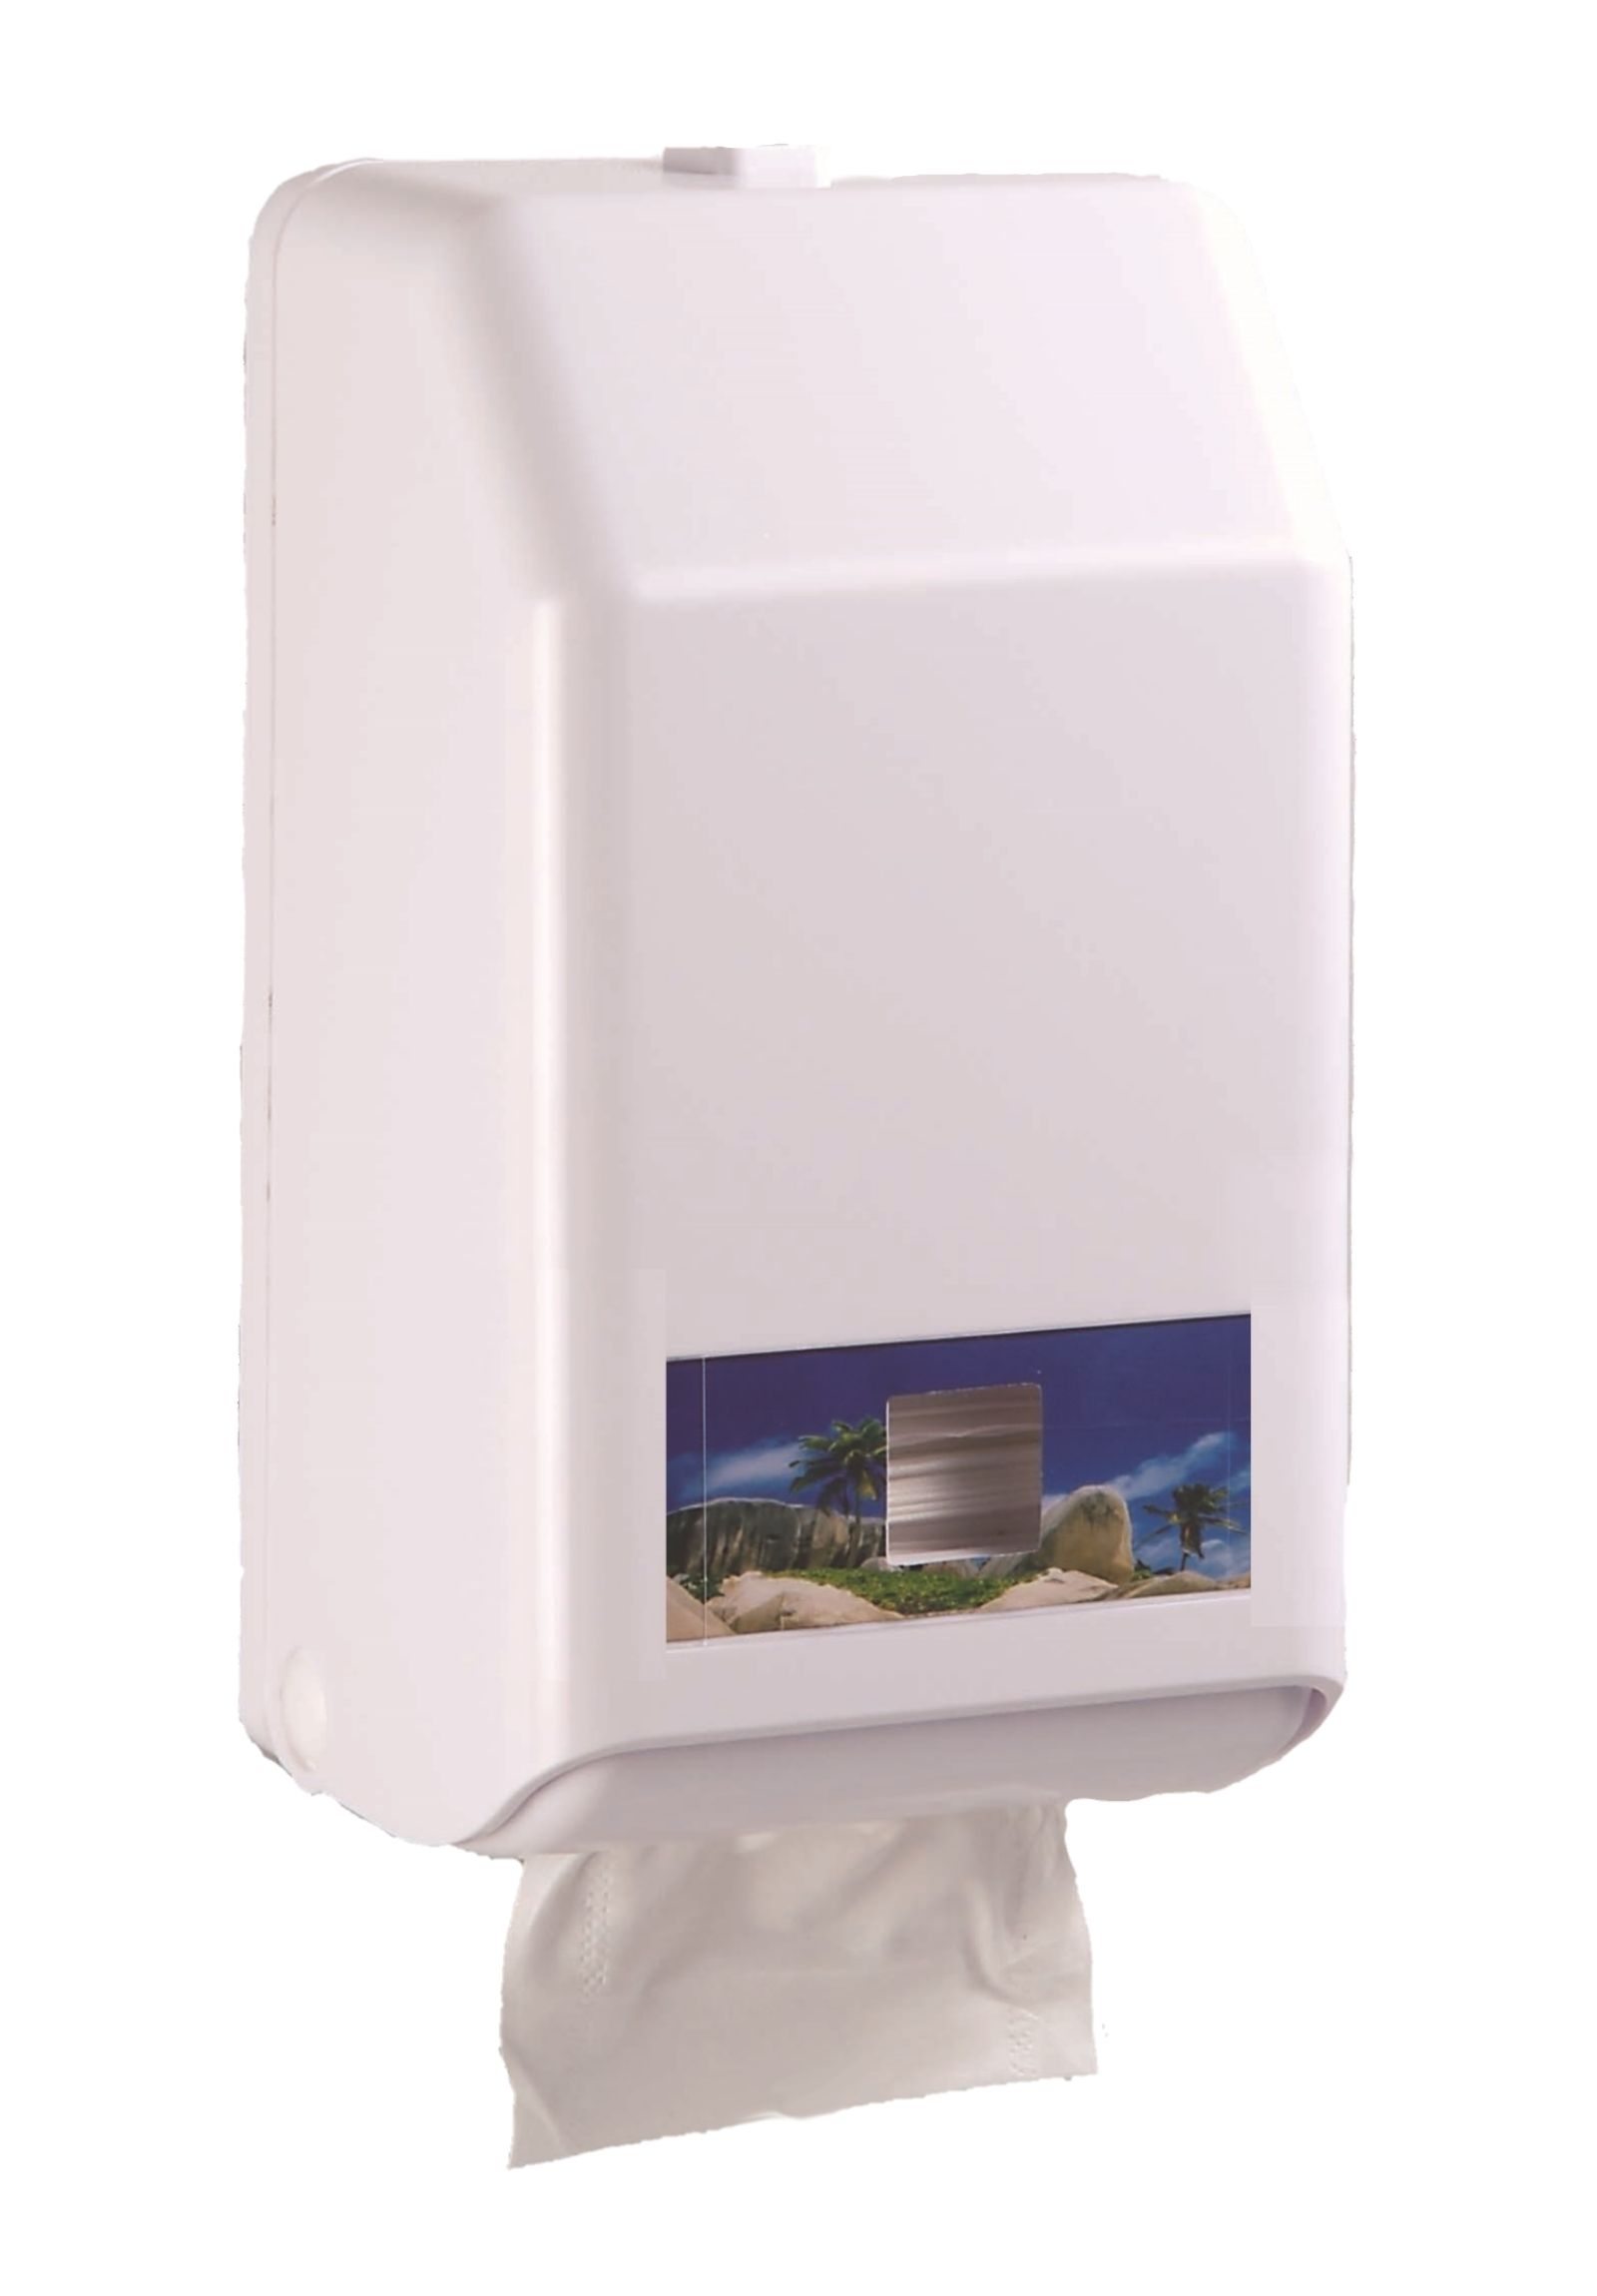 節能擦手紙架-新版Interfold hand towel dispenser